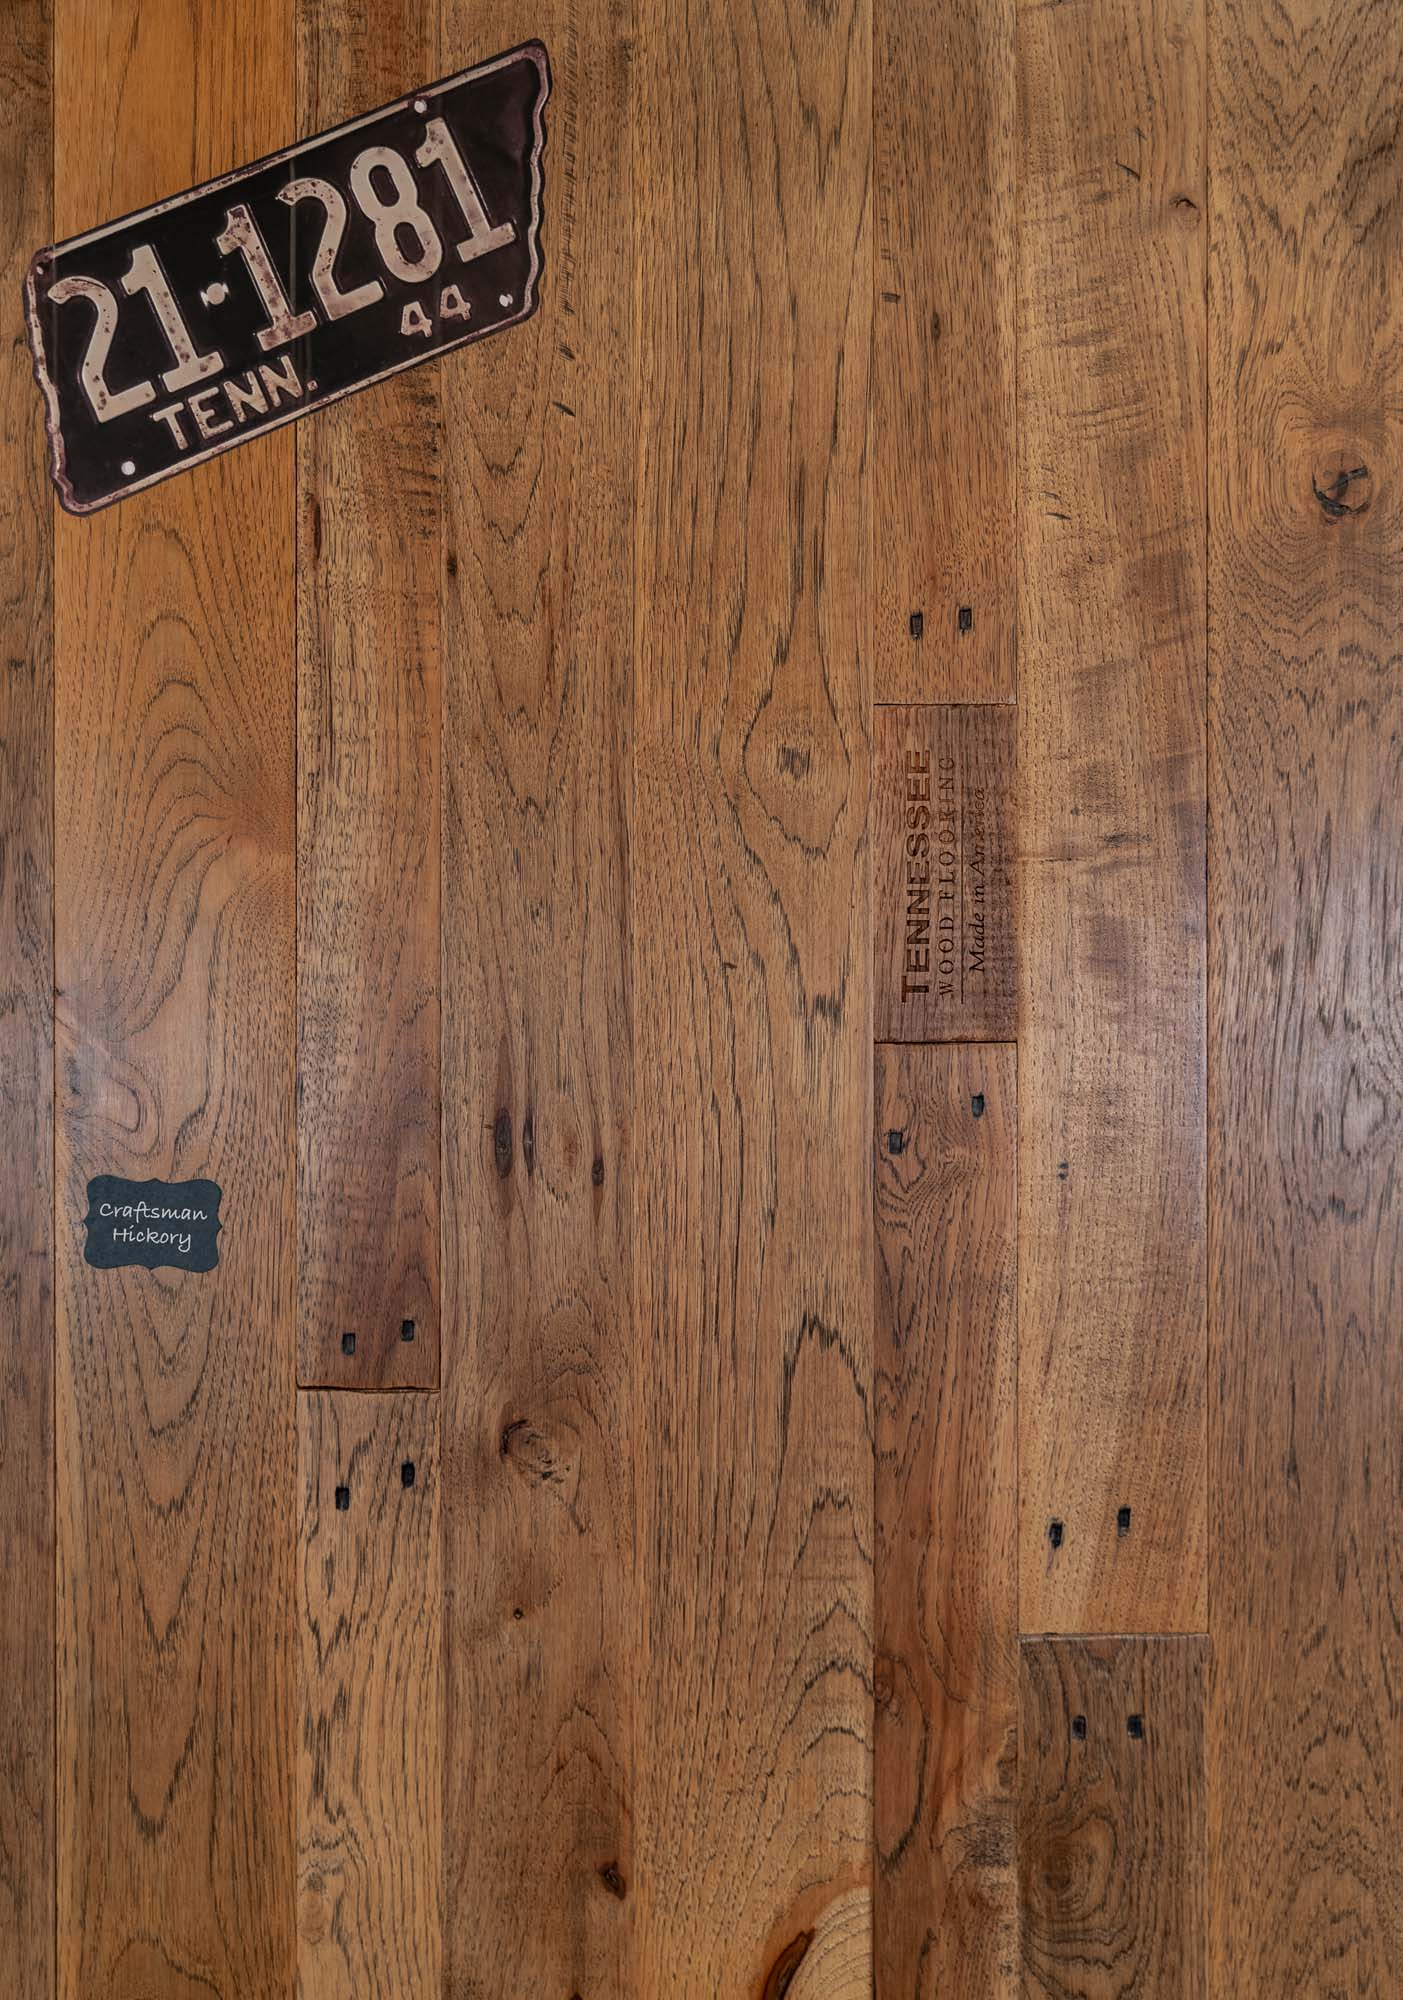 Craftsman Hickory Reclaimed Wood Flooring. Our Reclaimed lineup is our premium quality product line with a unique and classic look